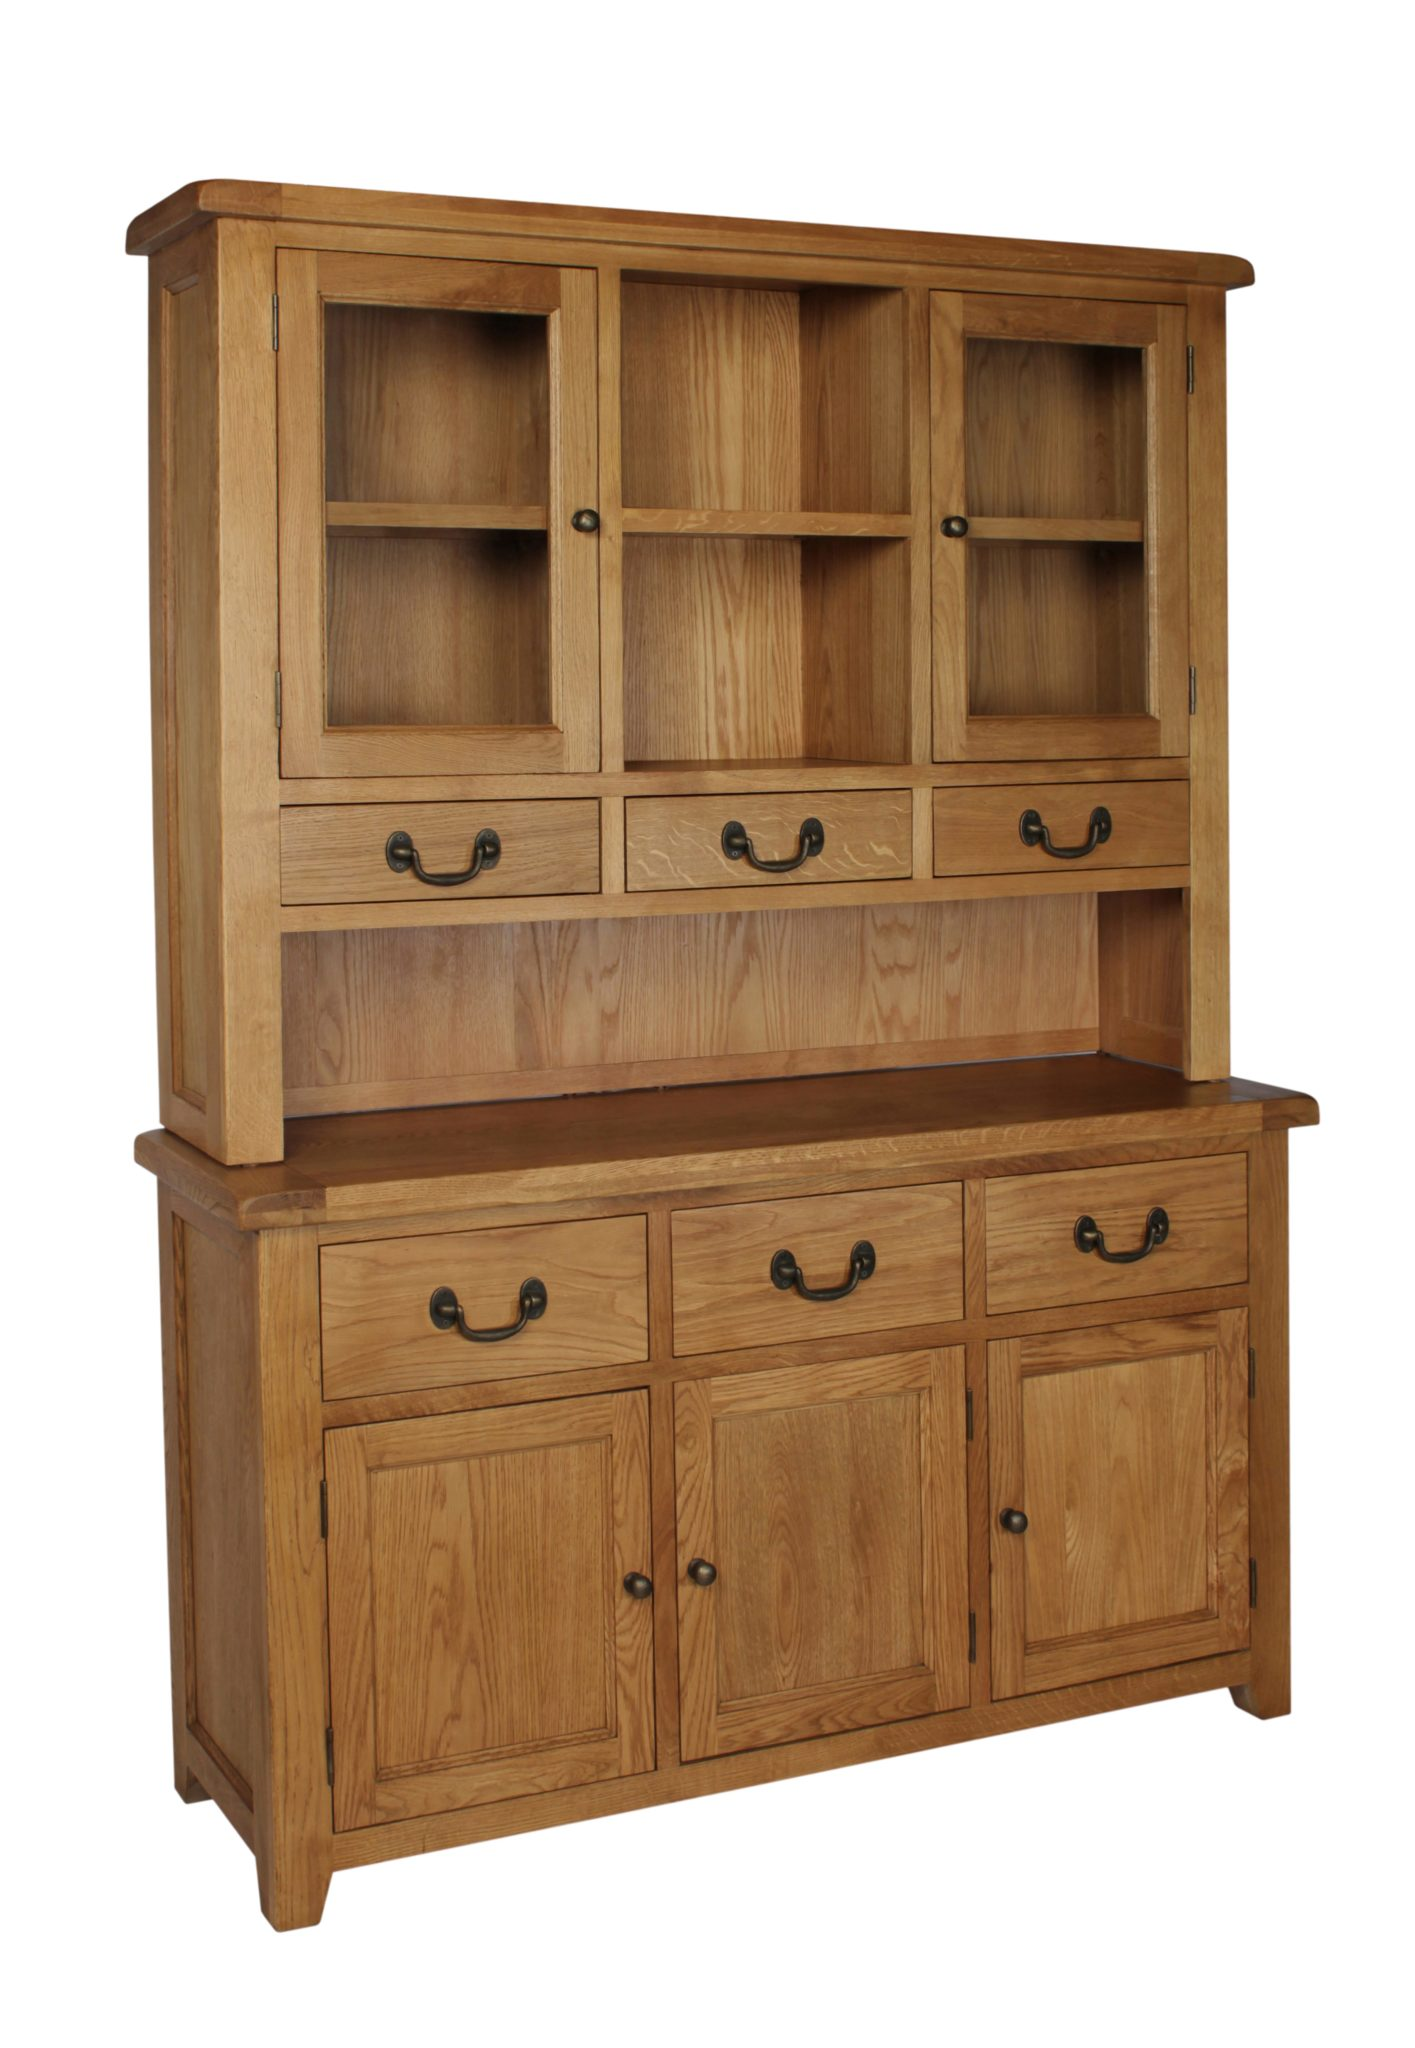 SOM053 Somerset oak large complet dresser